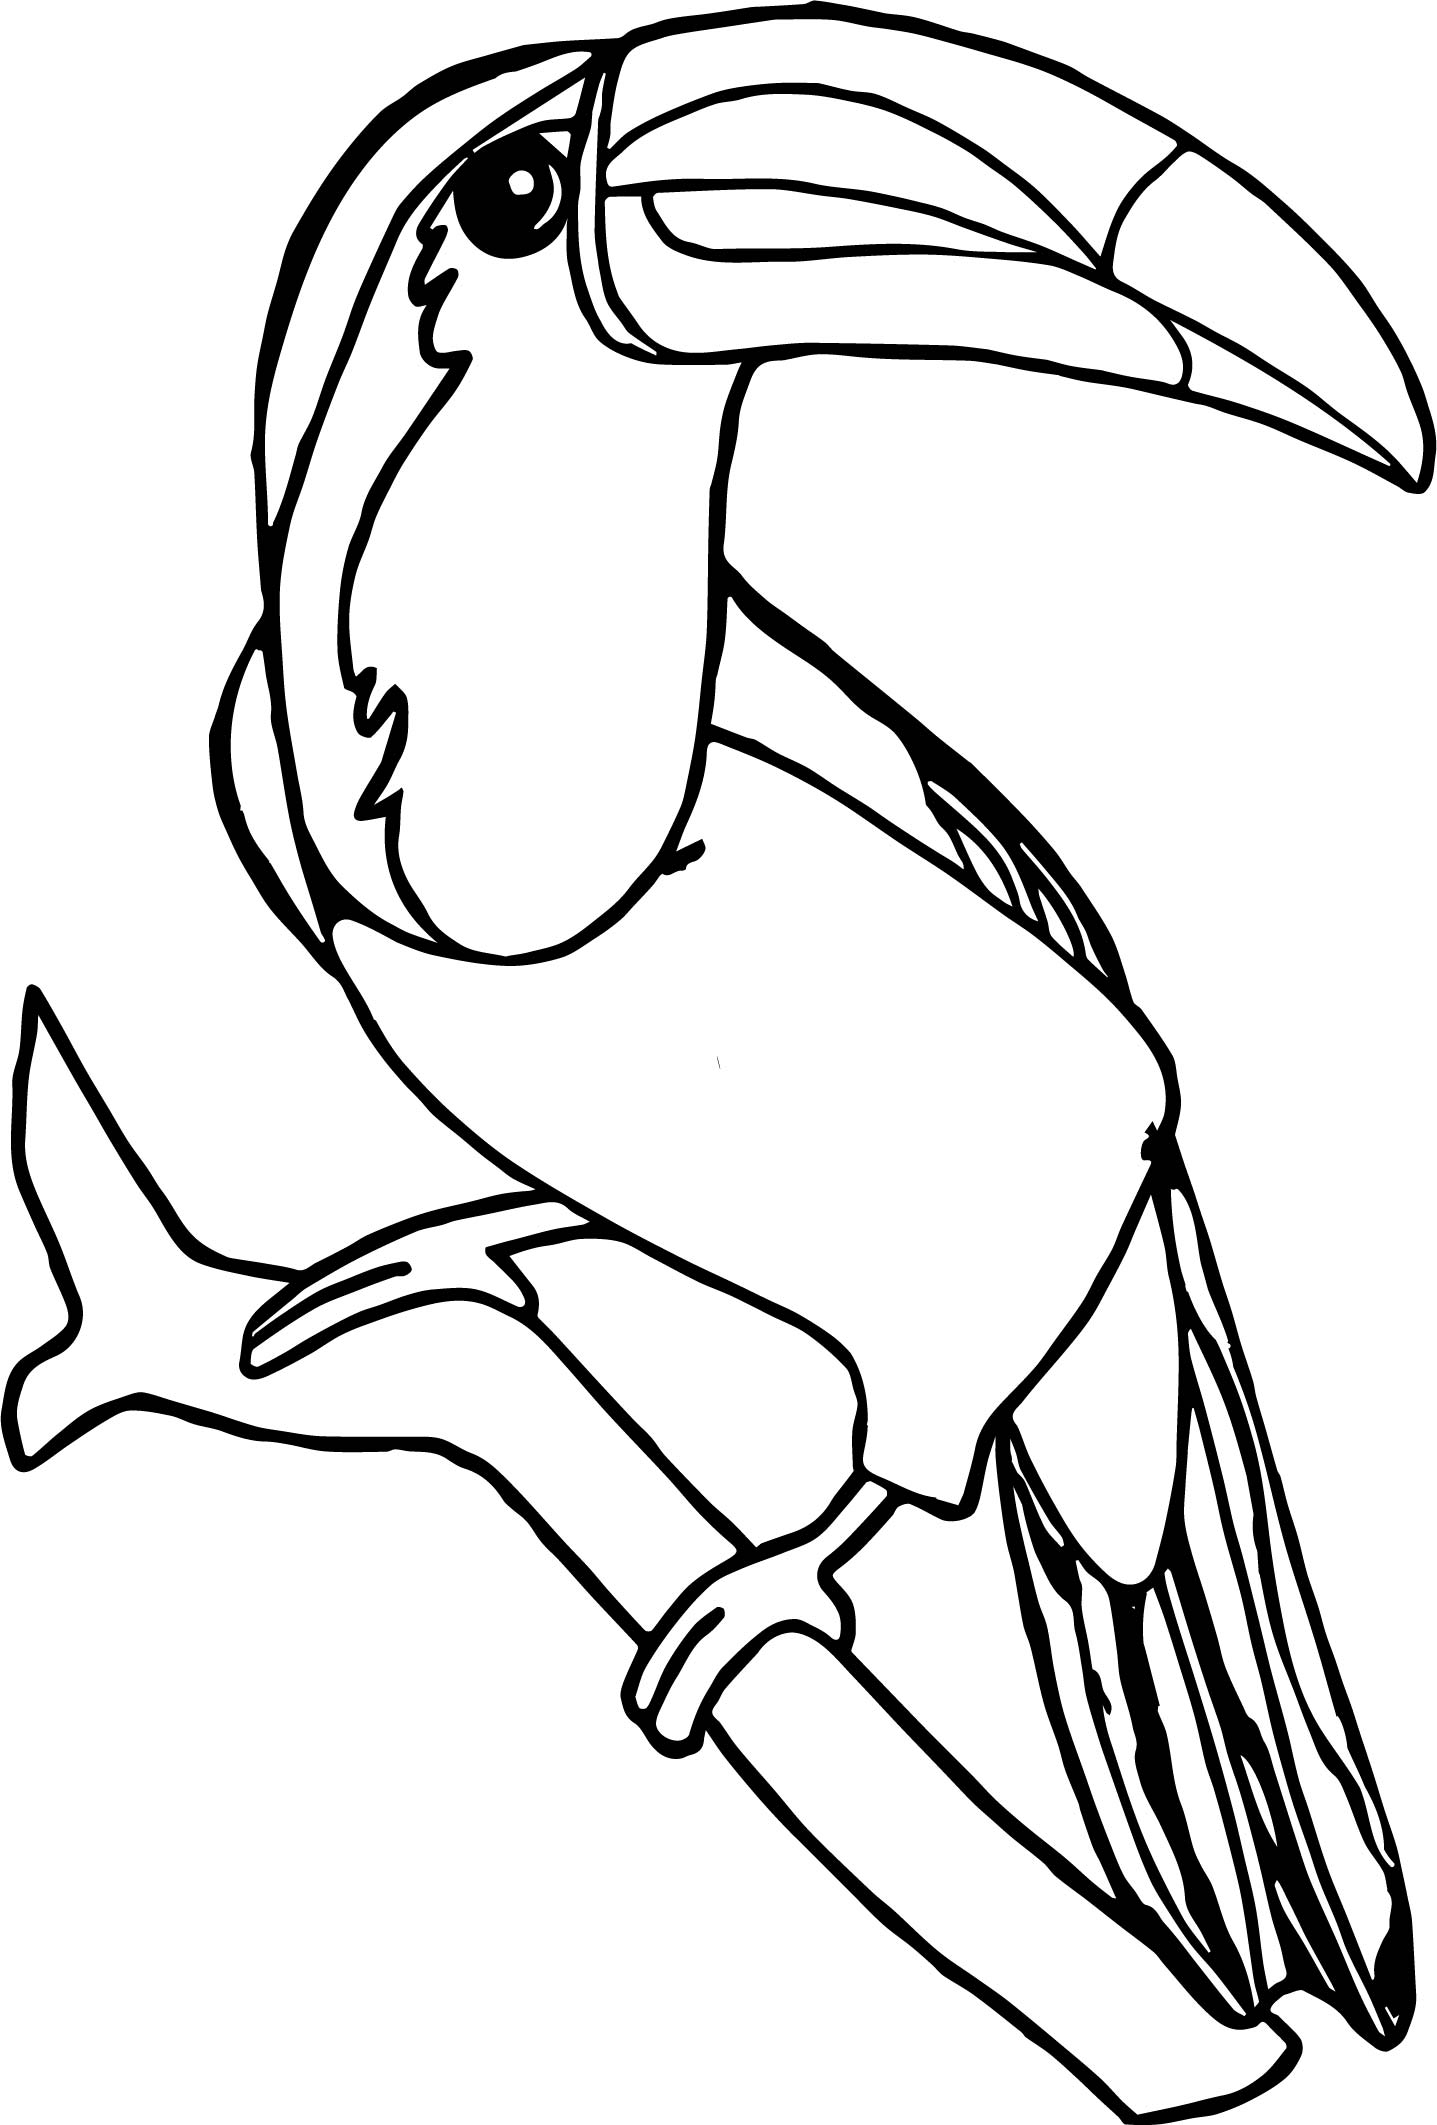 Rainforest Toucan Bird Coloring Page Wecoloringpage